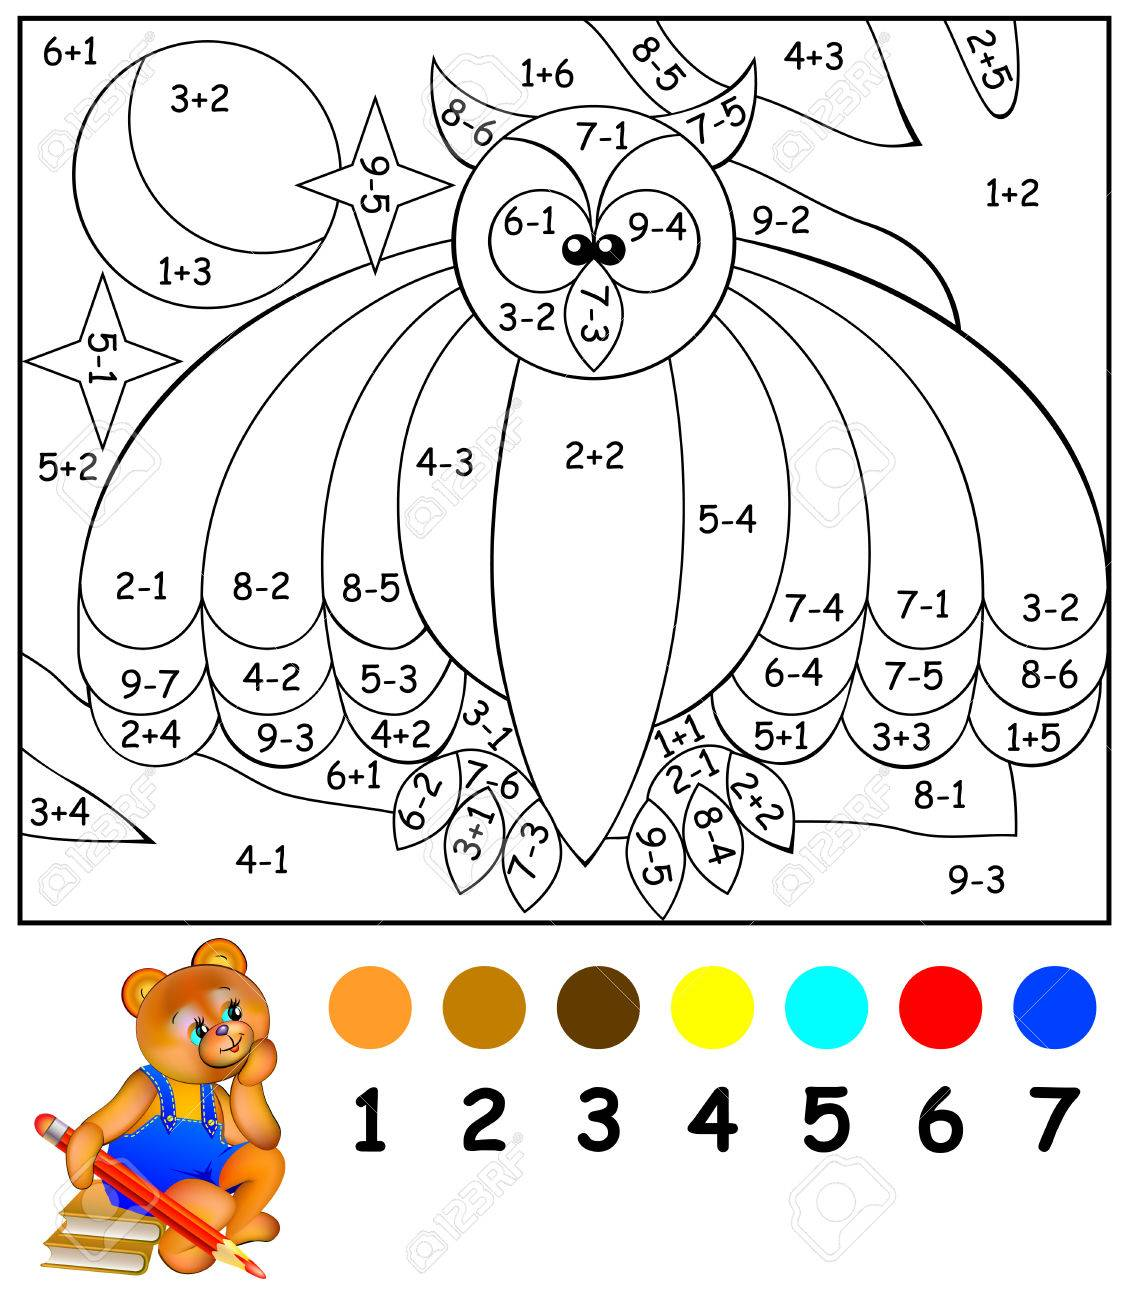 exercises for children need to paint image in relevant color developing skills for counting - Pictures To Paint For Children